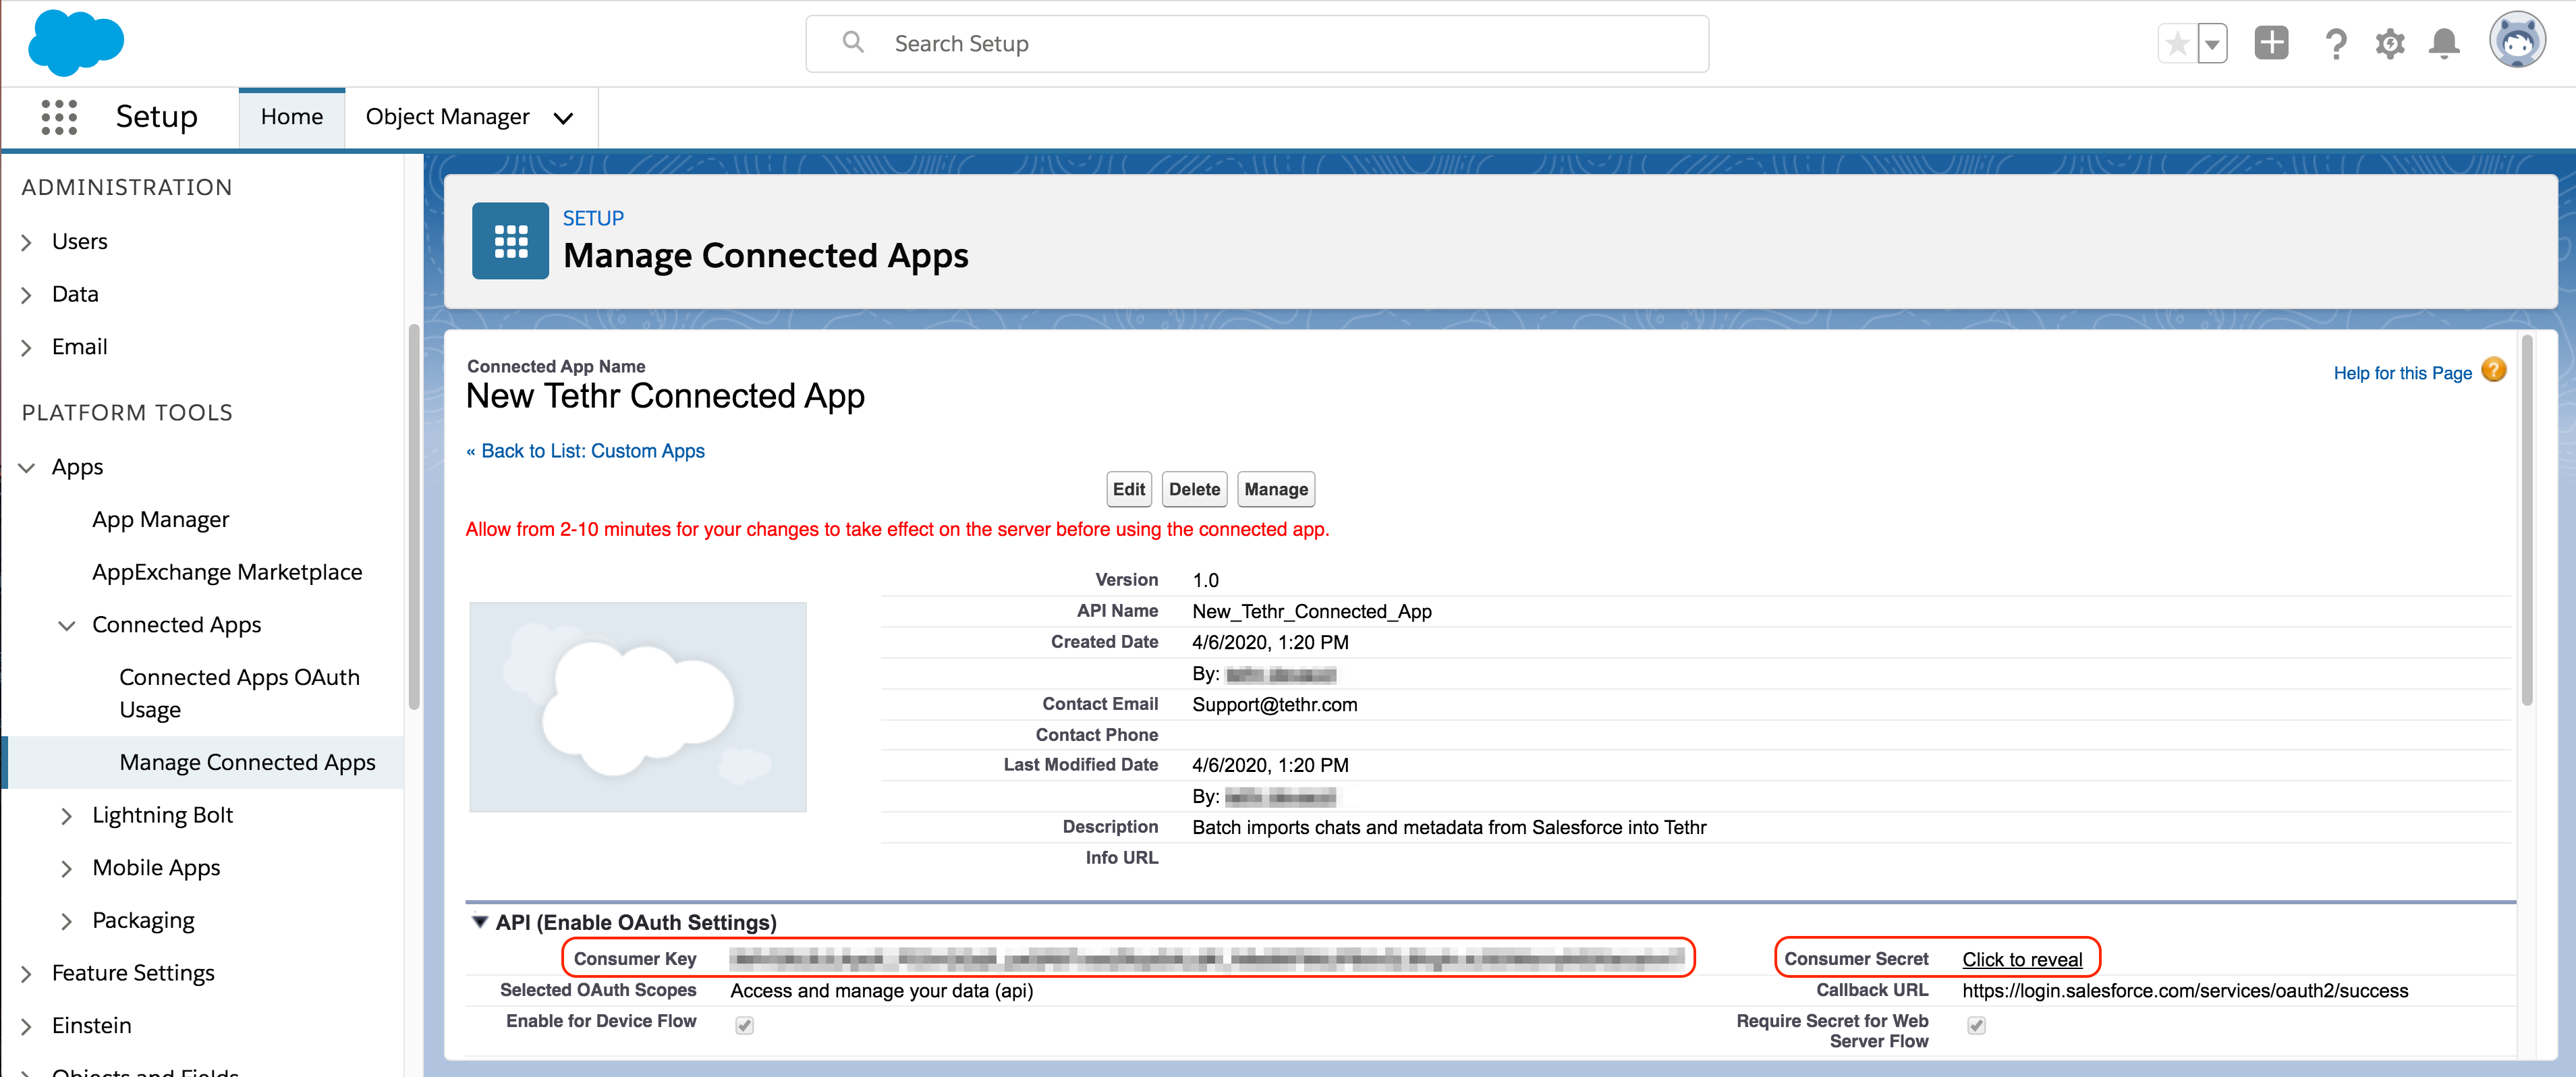 Select_Continue_to_create_your_new_Tethr_Connected_App_in_Salesforce_and_grab_the_credentials_you_ll_need_to_provide_to_Tethr___Customer_integrations_support_blurred.png